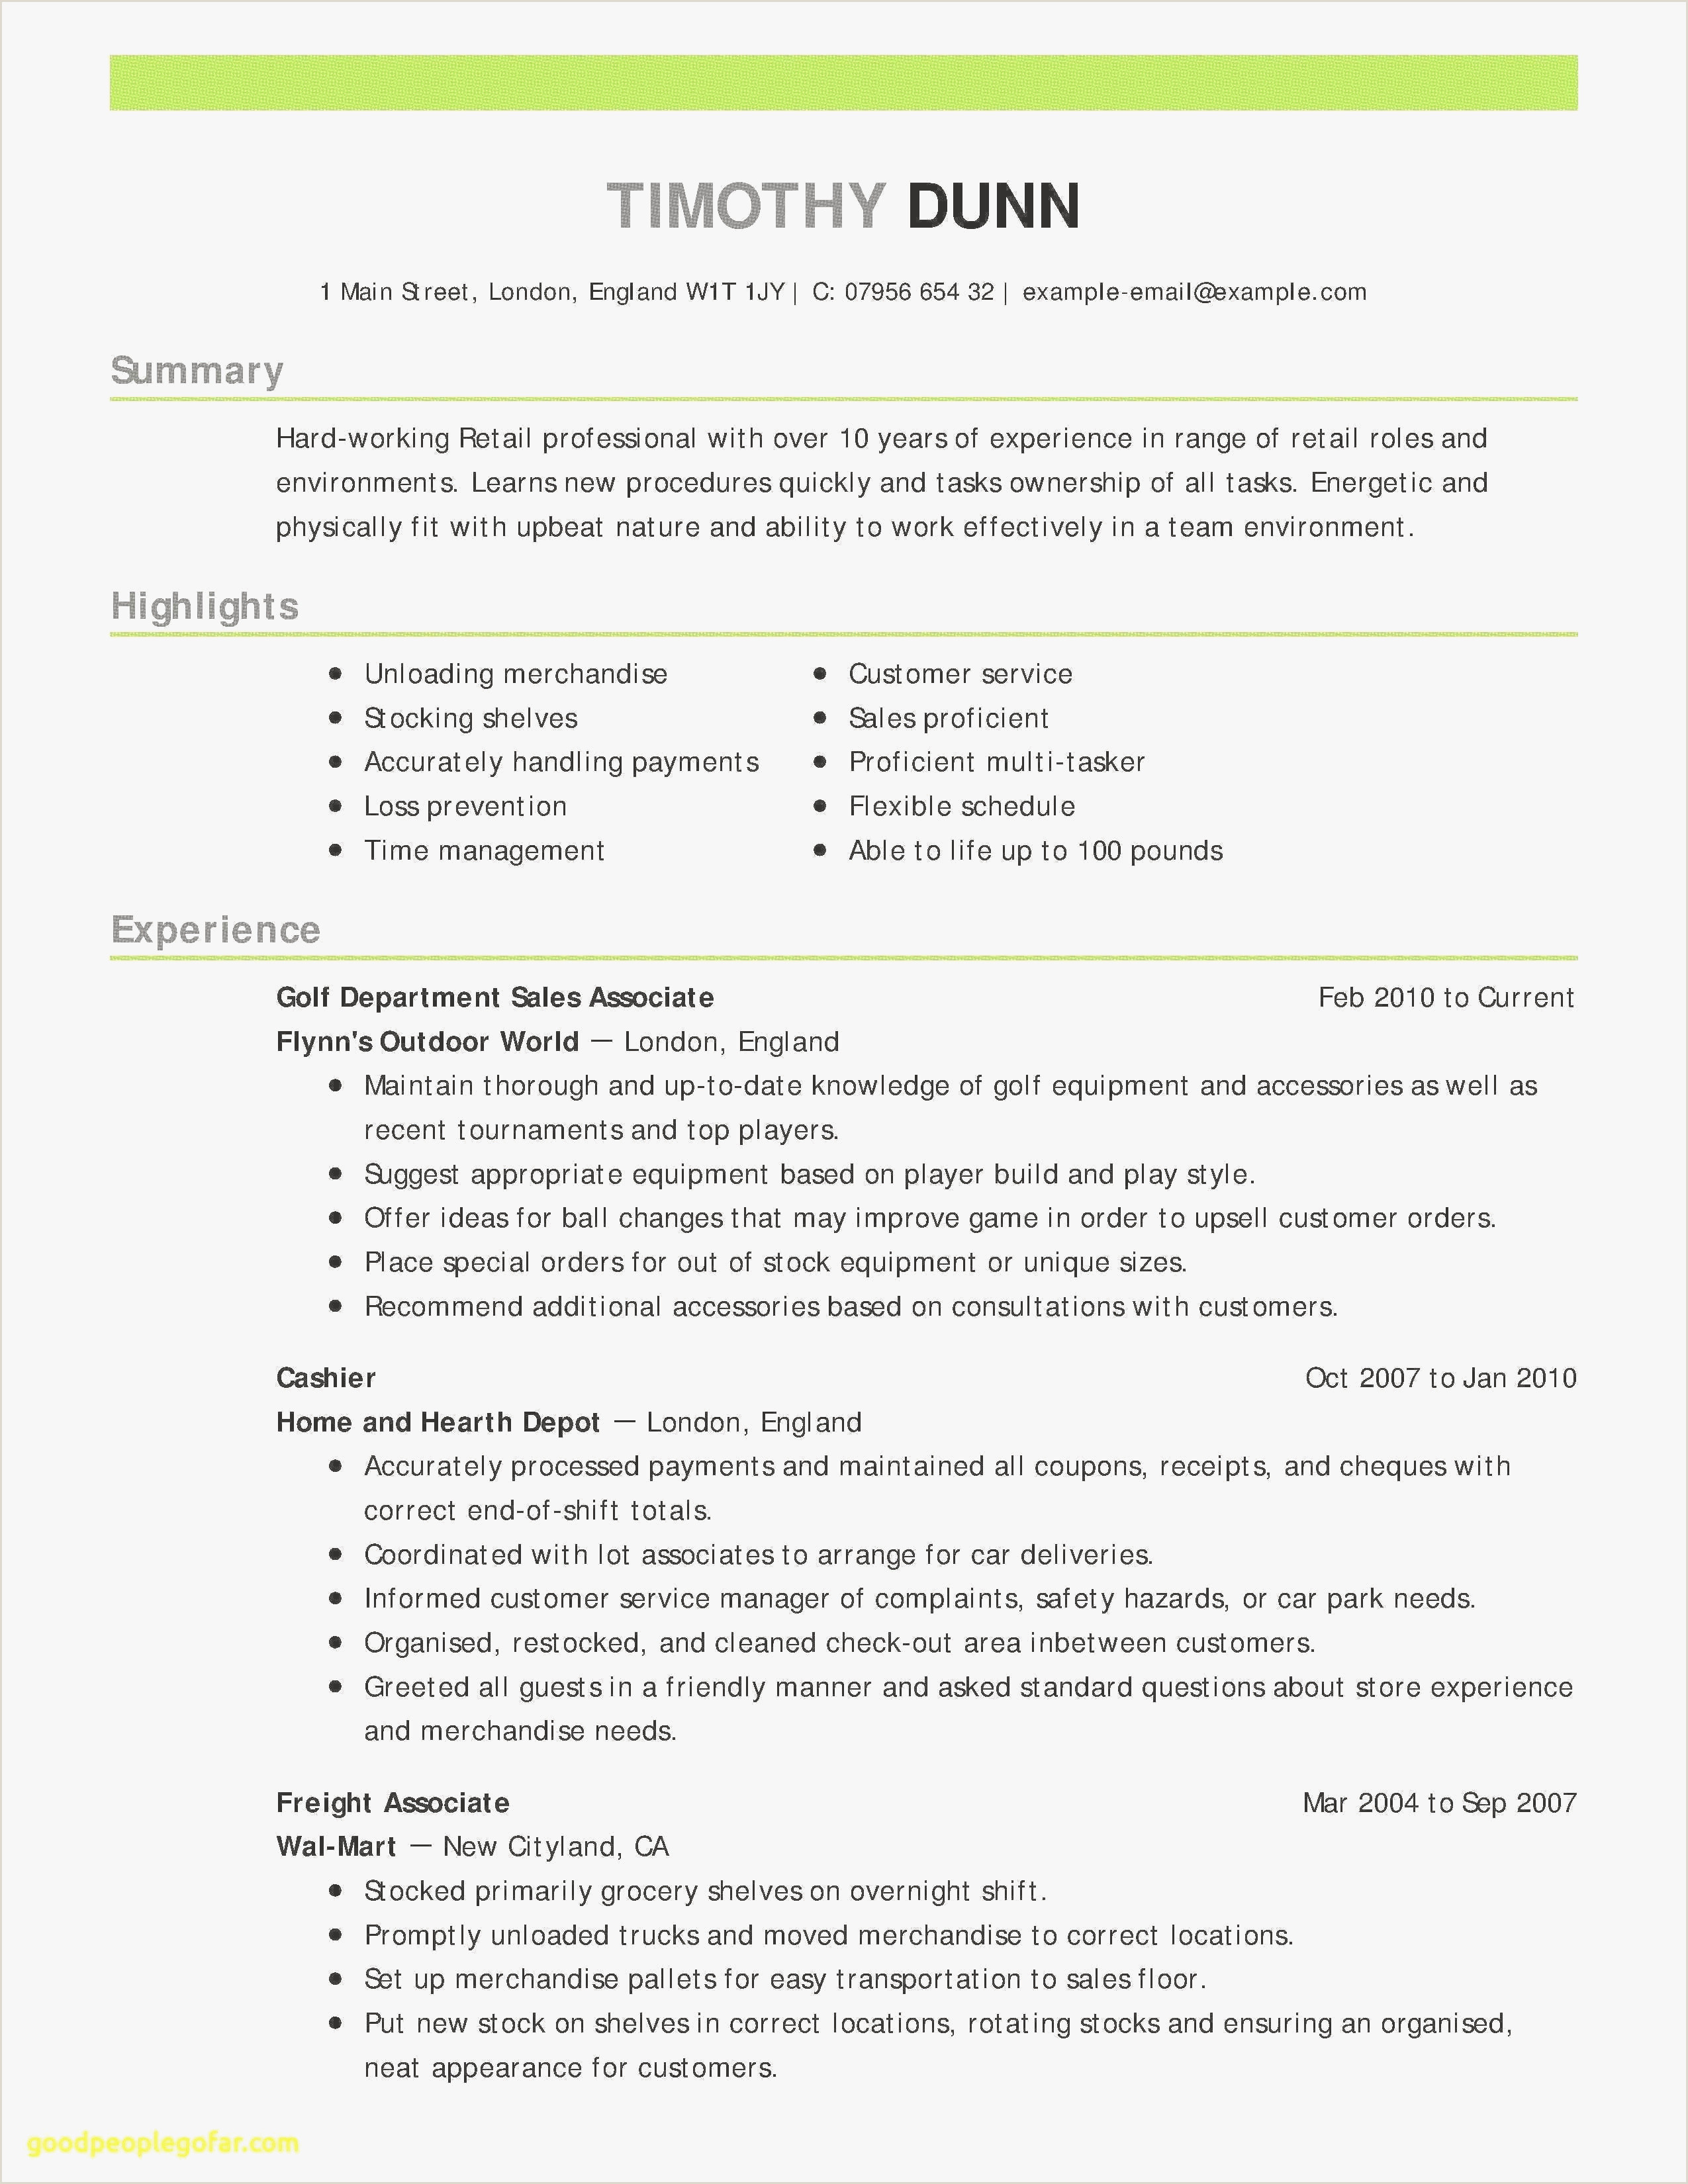 Modern format Of Cv Writing Hairstyles Professional Resume Examples Stunning Resume